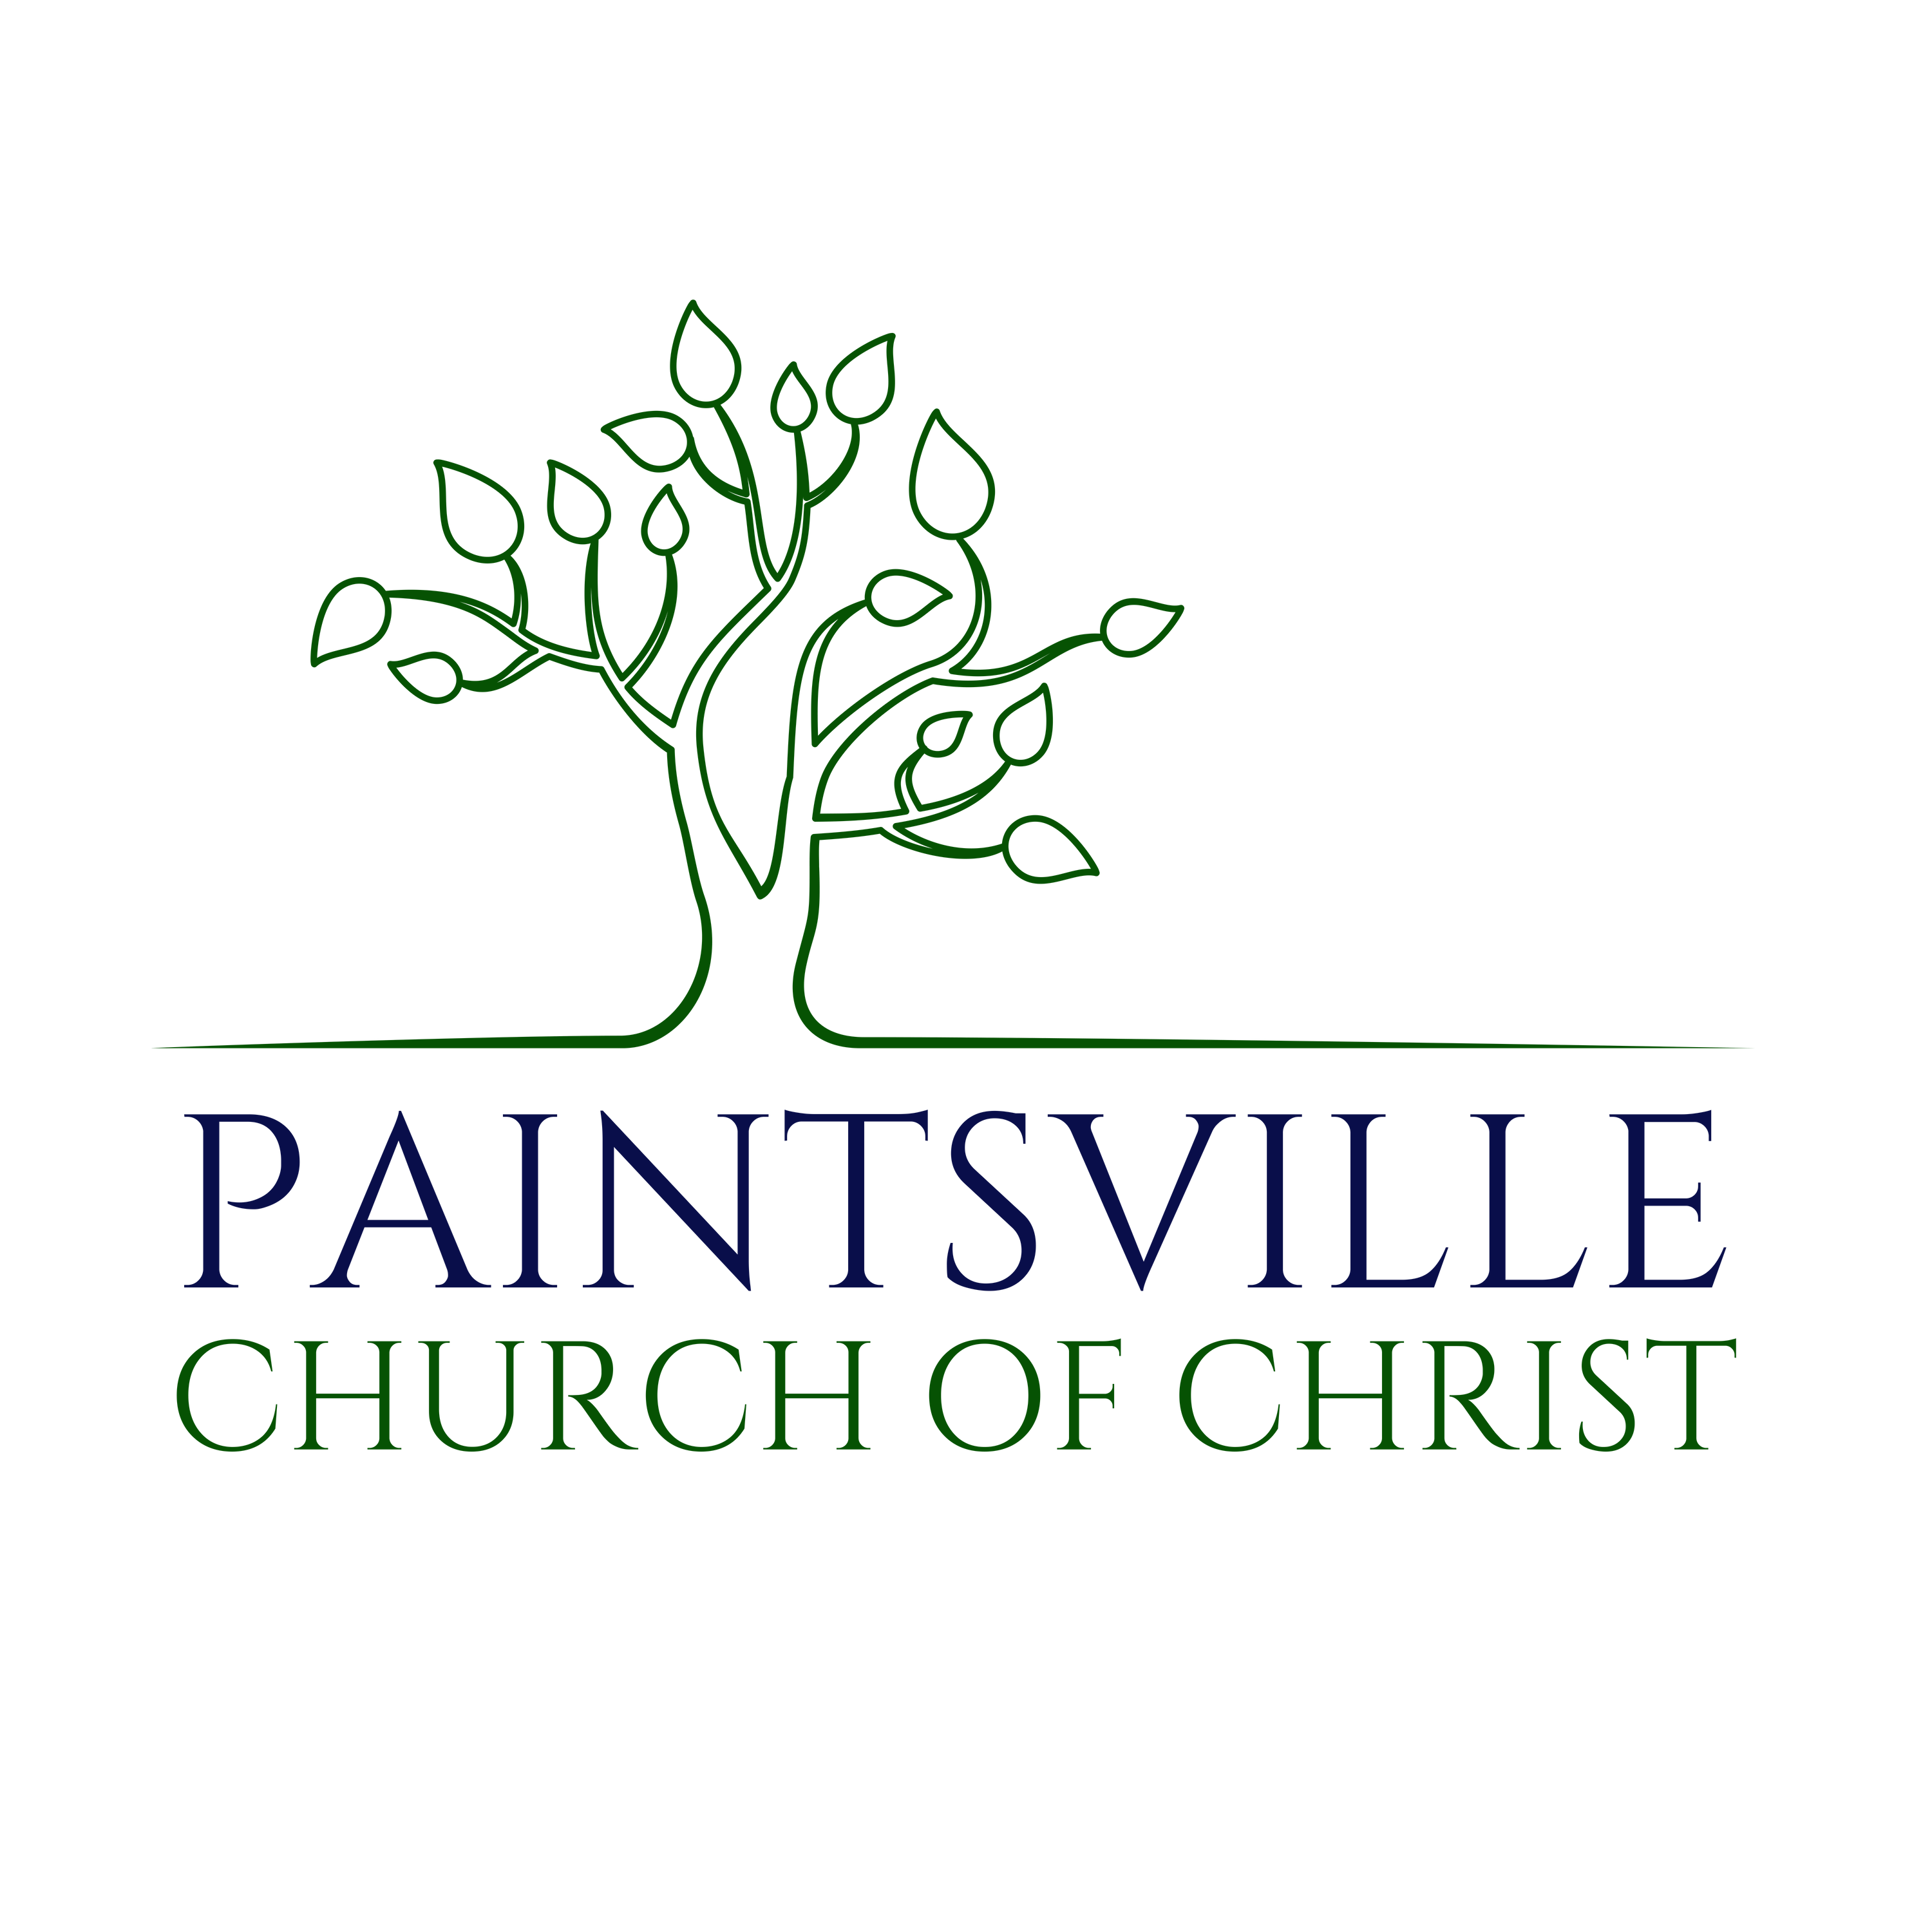 Paintsville church of Christ